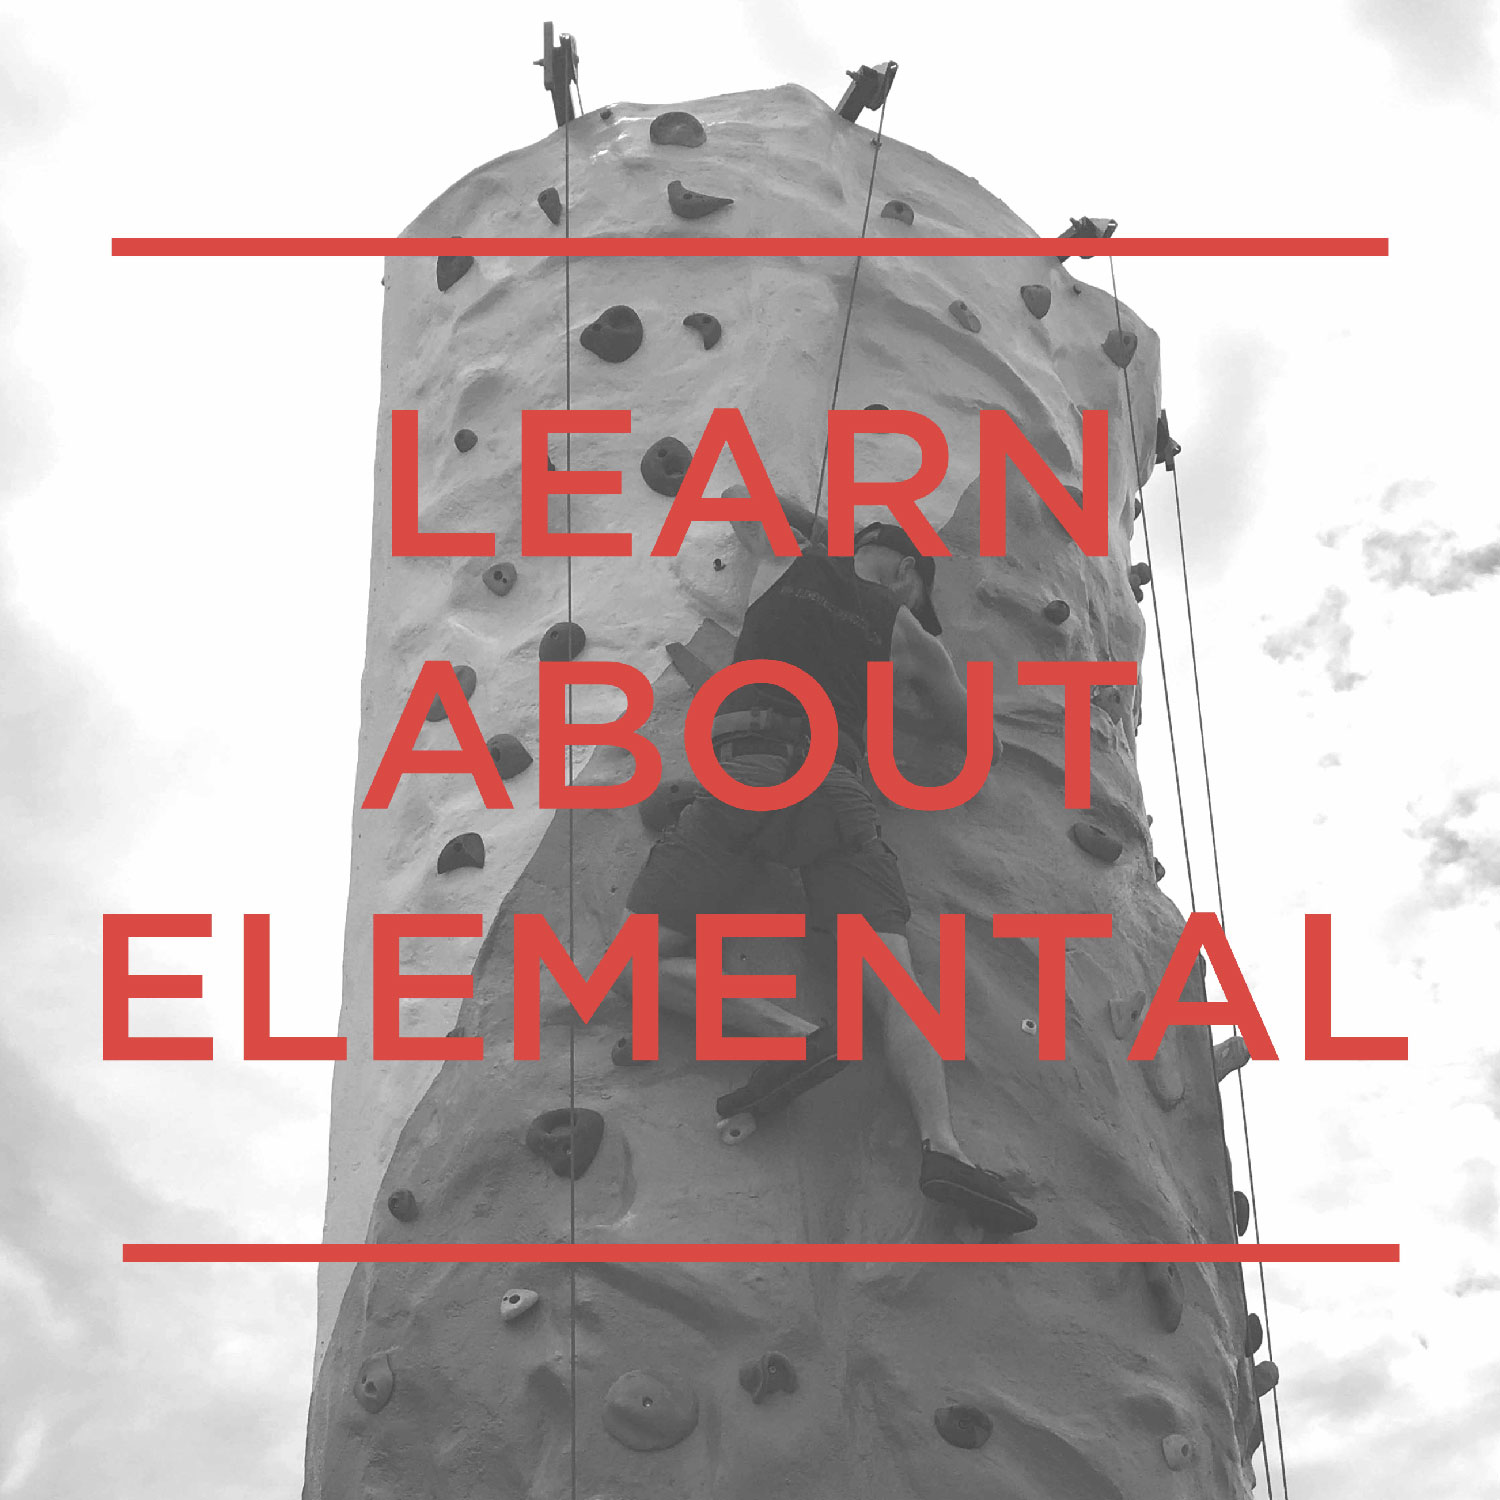 LEARN MORE ABOUT ELEMENTAL